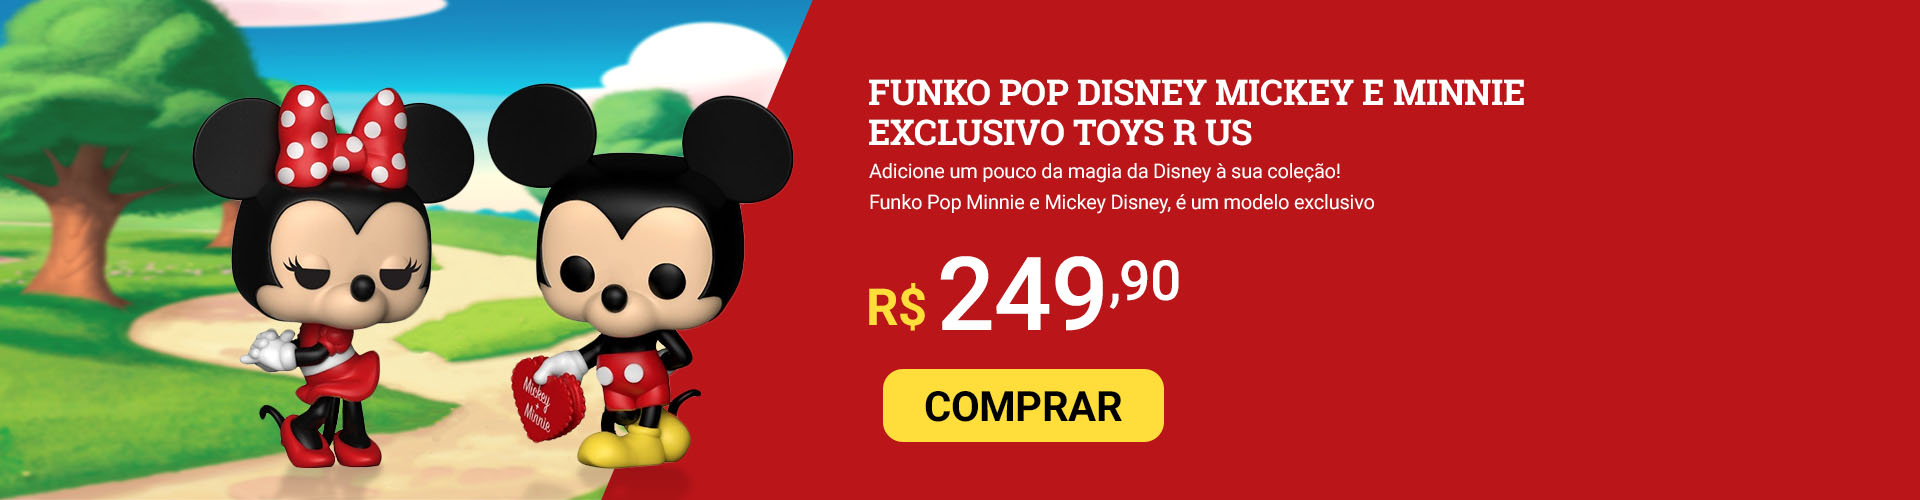 SuperOff - Funko Pop Disney